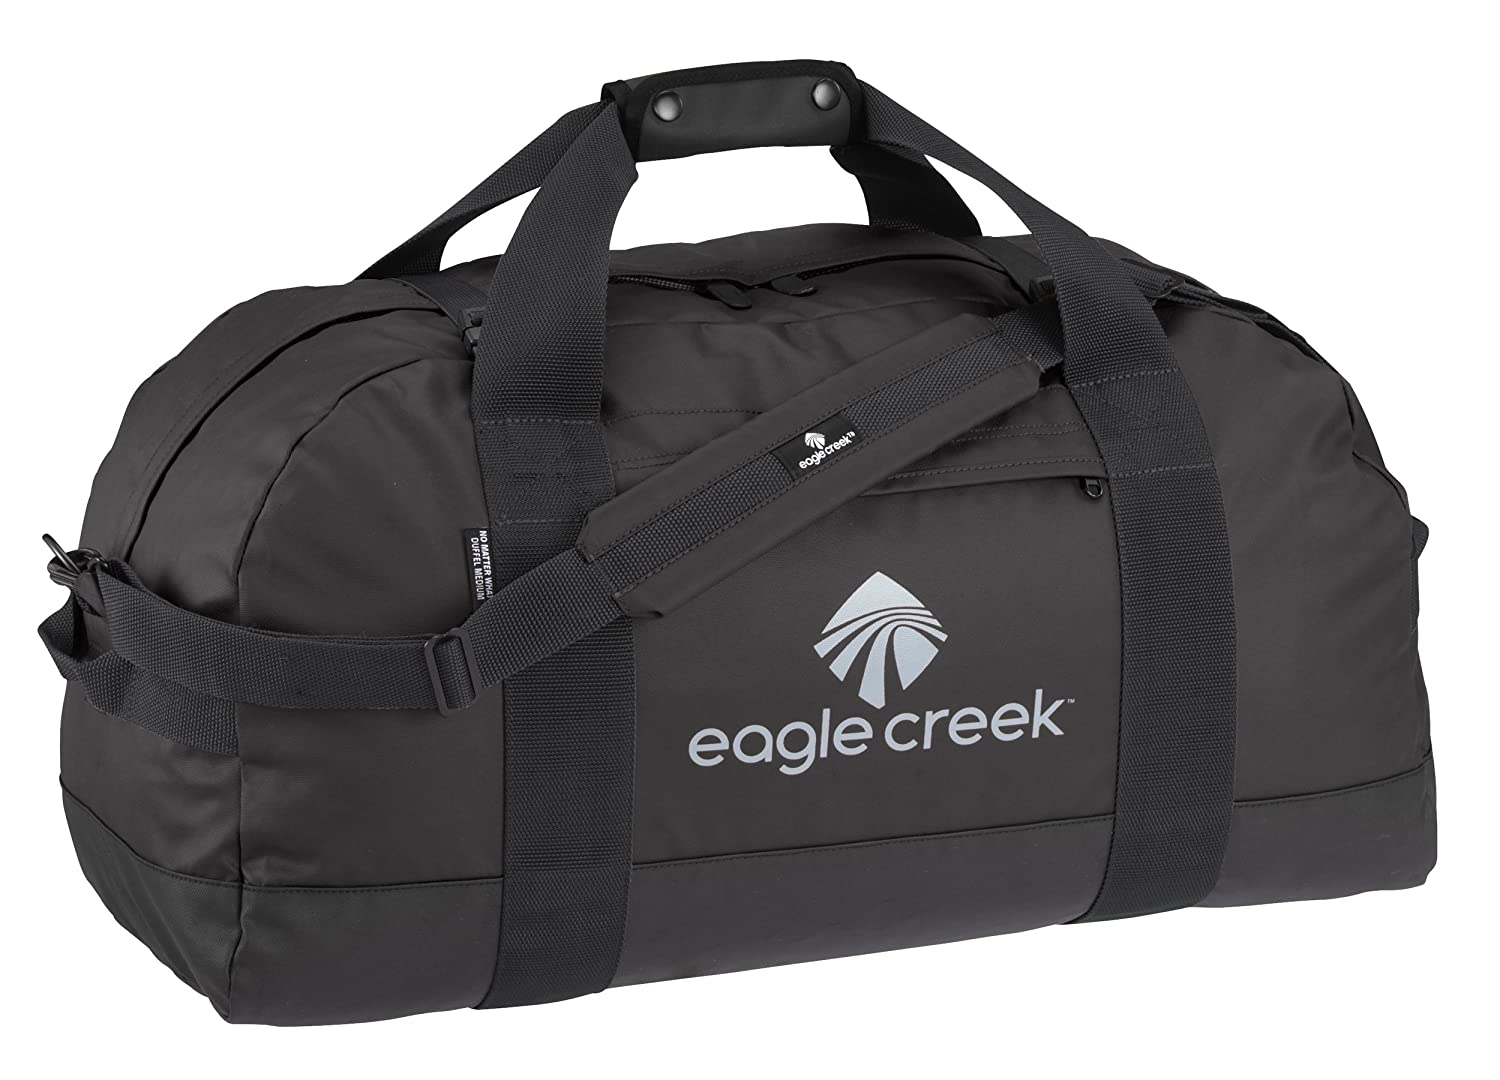 eagle creek No Matter What Duffel M Olive YptVTP2